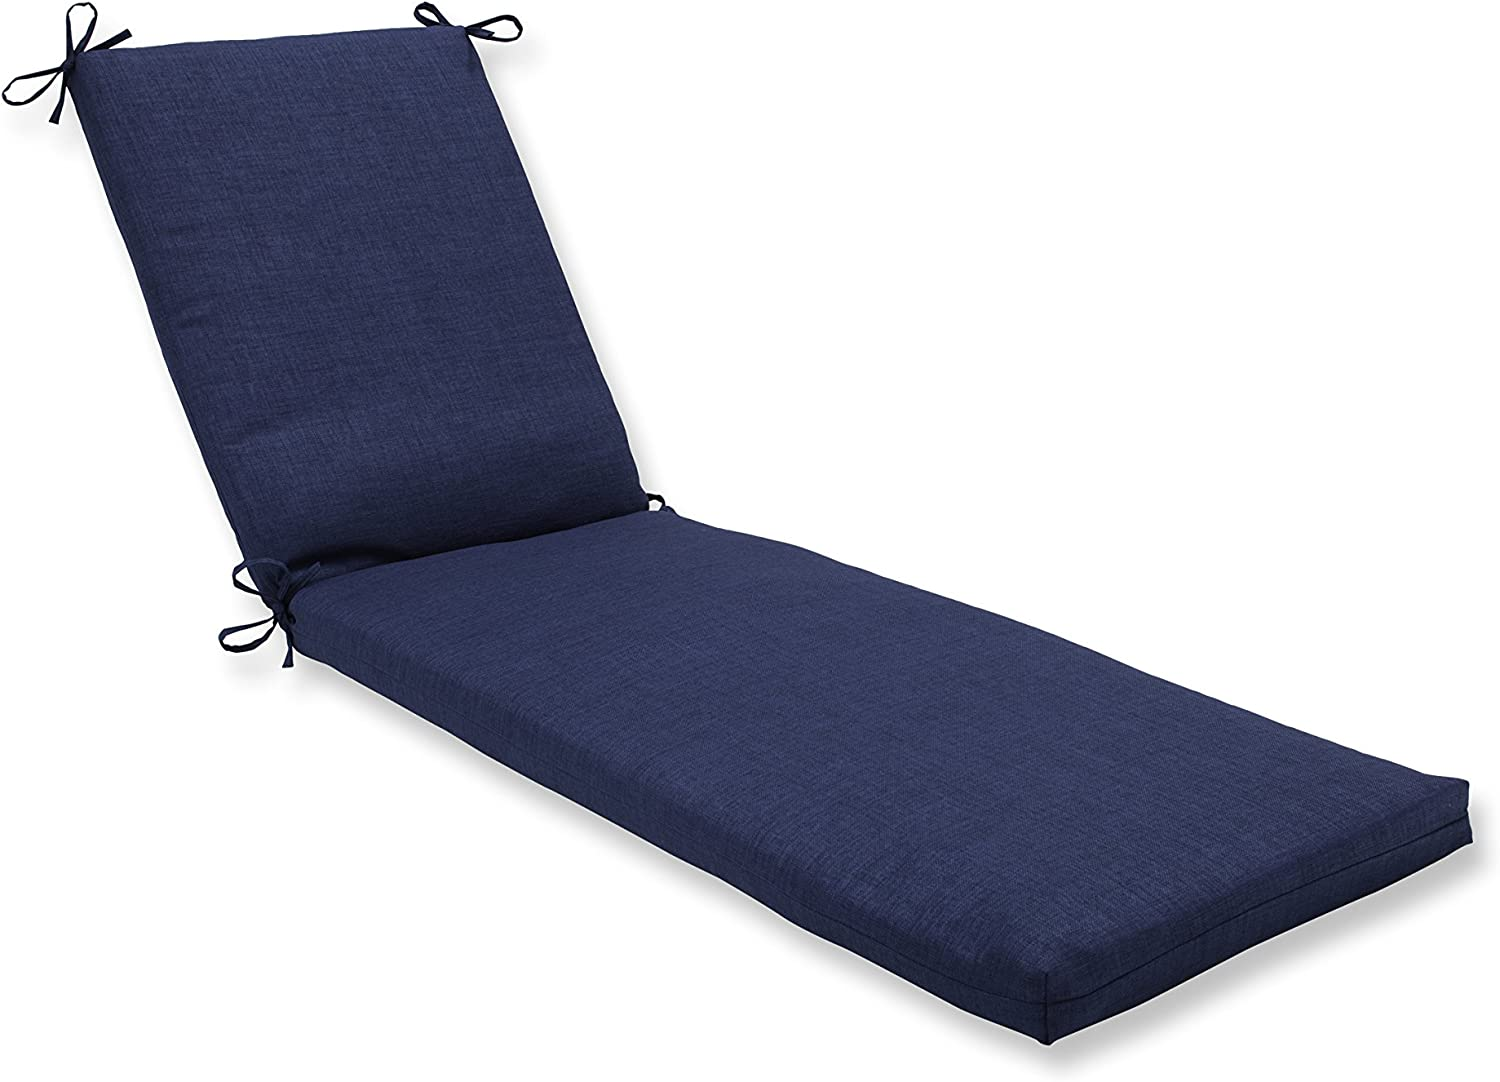 Pillow Perfect Outdoor/Indoor Rave Indigo Chaise Lounge Cushion 80x23x3,Blue